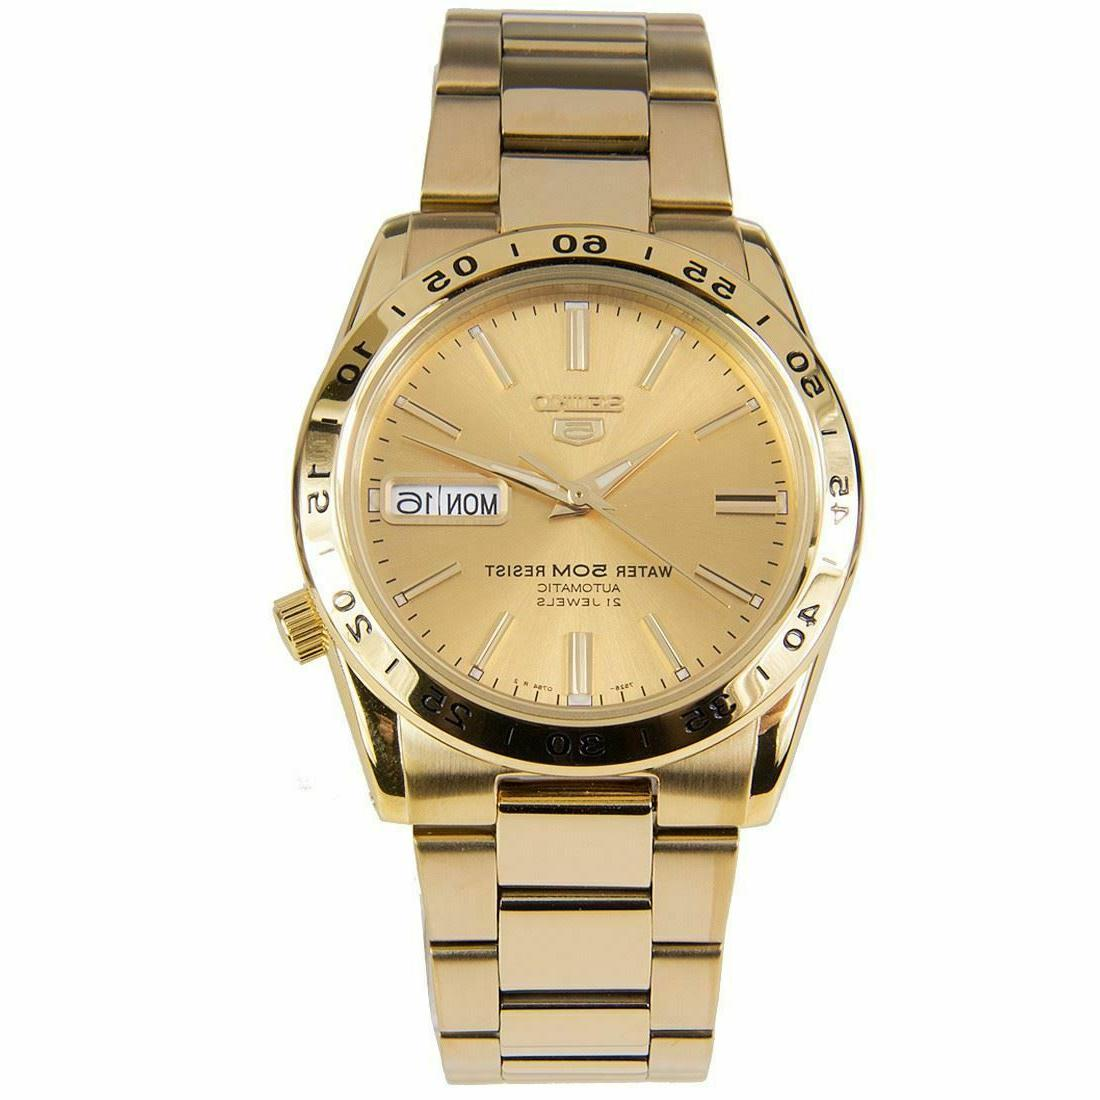 new 5 gold tone automatic watch 50m